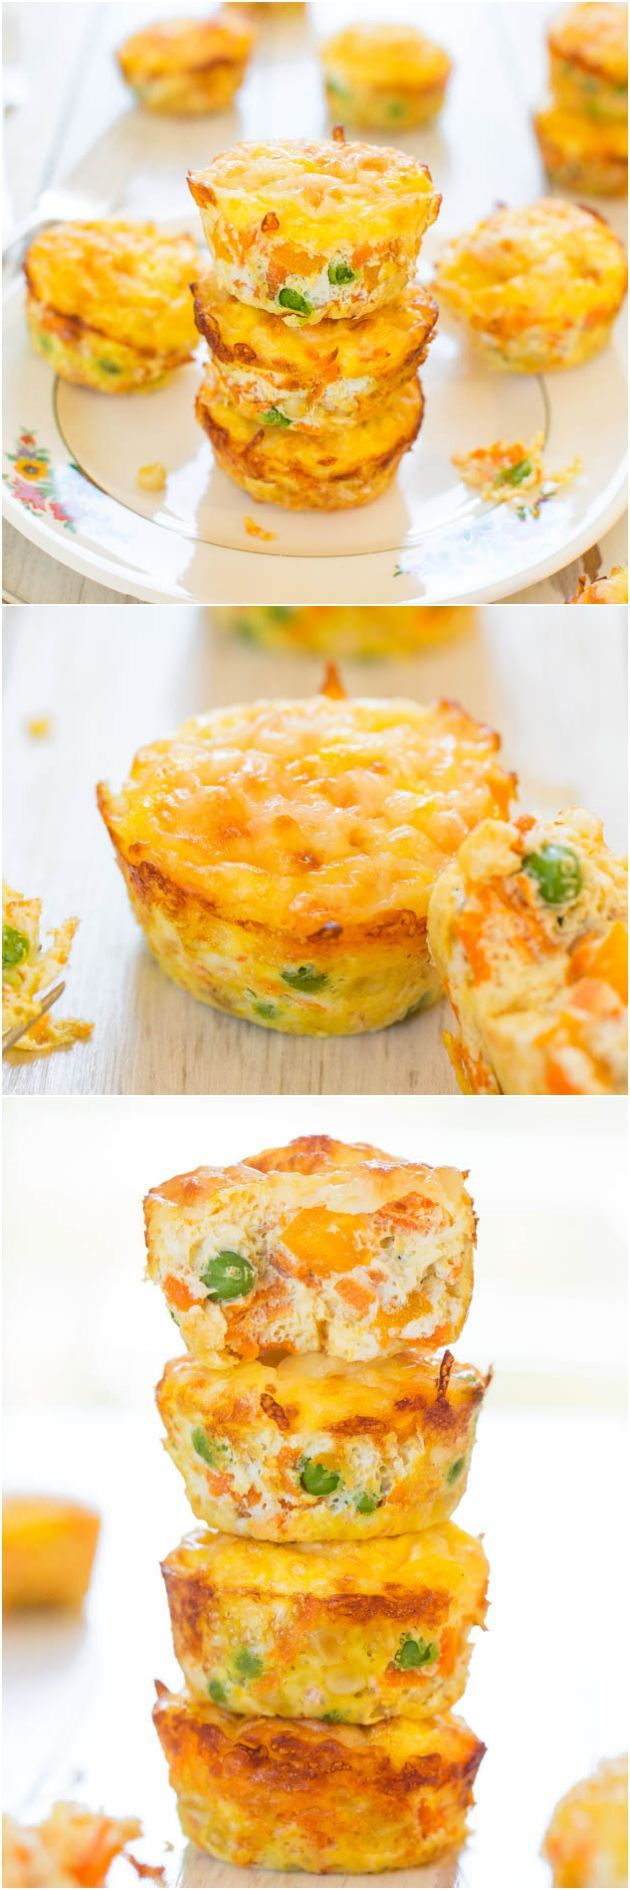 100-Calorie Cheese, Vegetable and Egg Muffins (GF) - Healthy, easy ll want to keep a stash on hand!